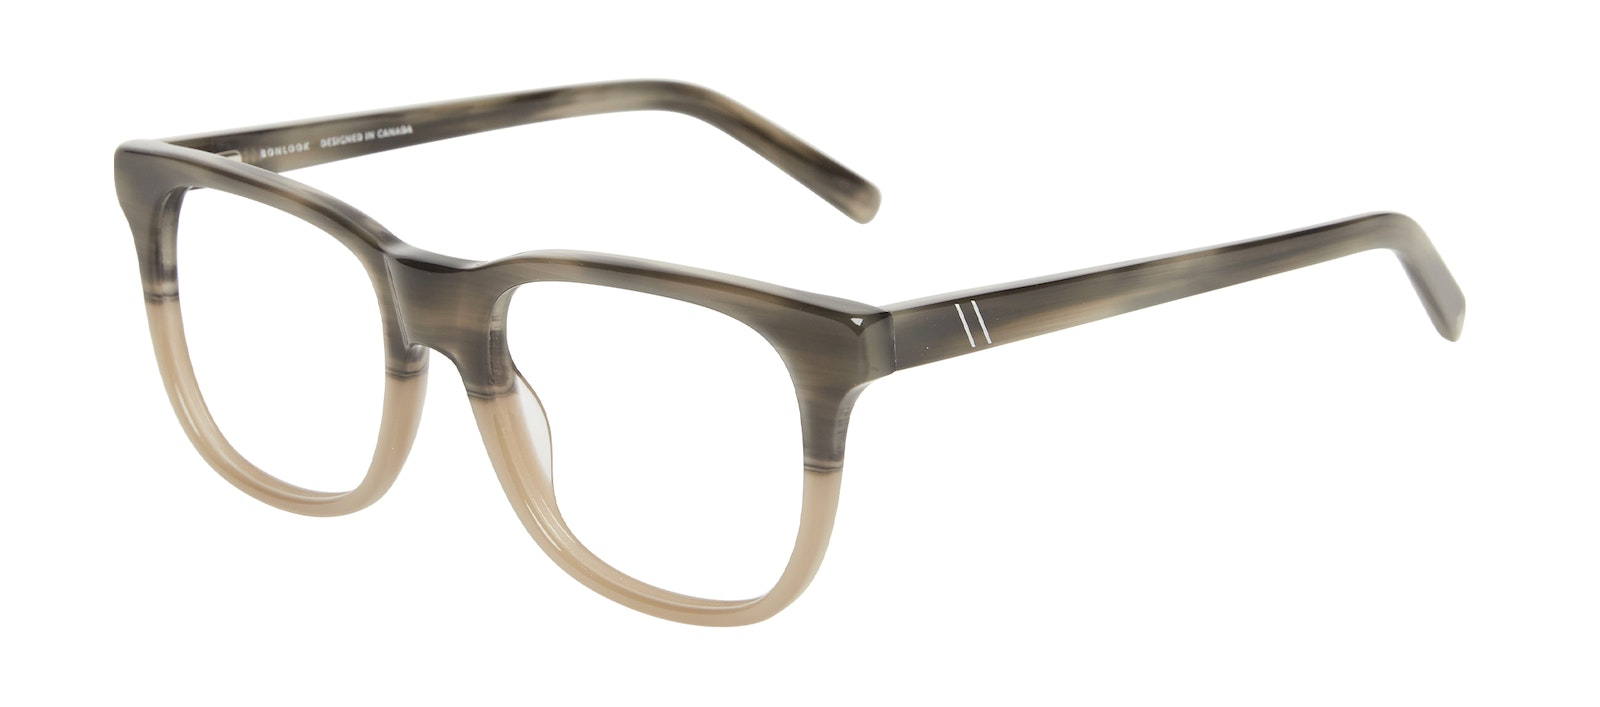 Affordable Fashion Glasses Square Eyeglasses Men Solo Two Tone Stone Tilt